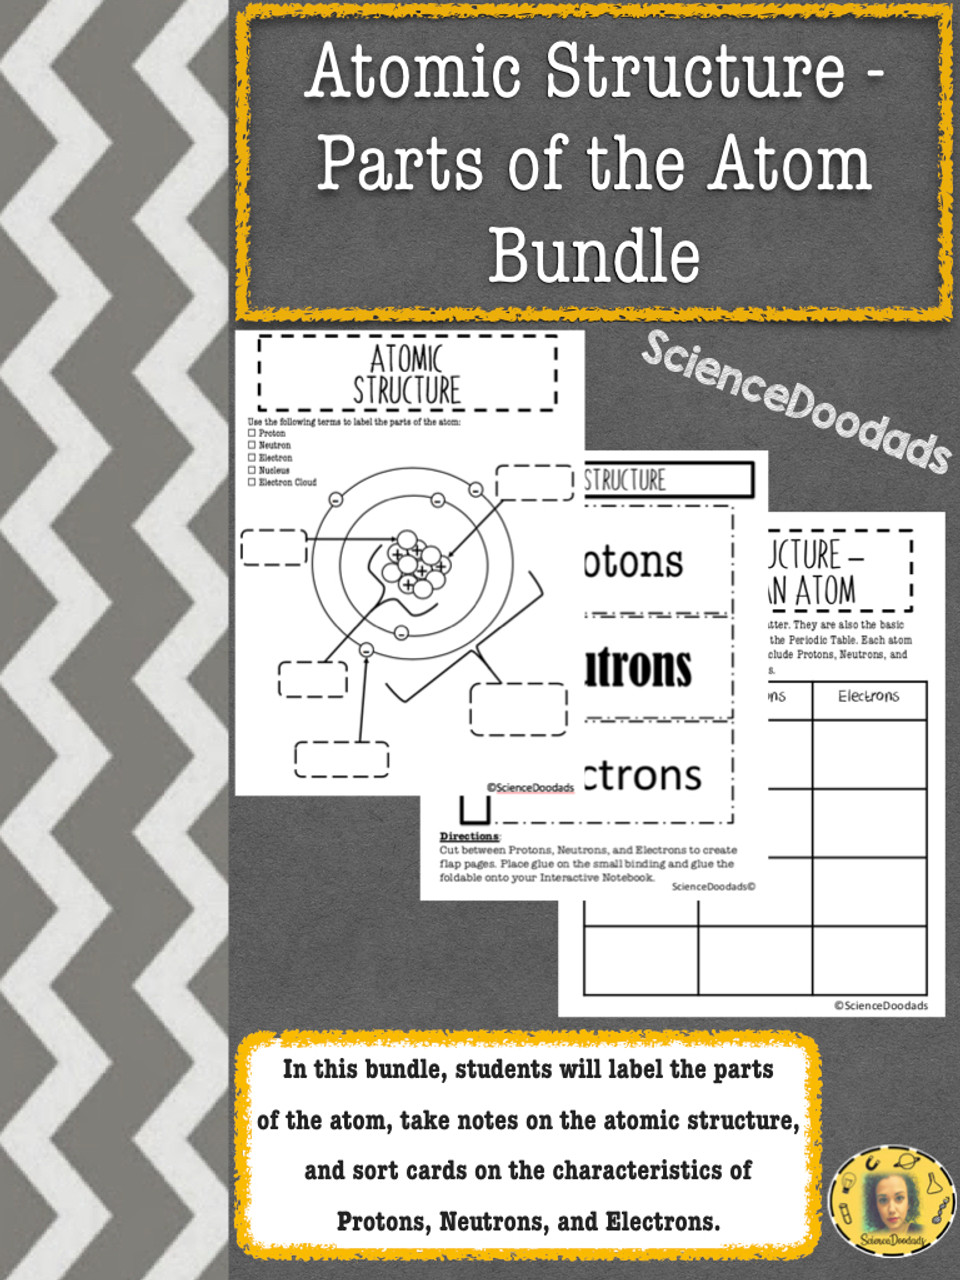 small resolution of Atomic Structure - Parts of the Atom - Bundle - Amped Up Learning